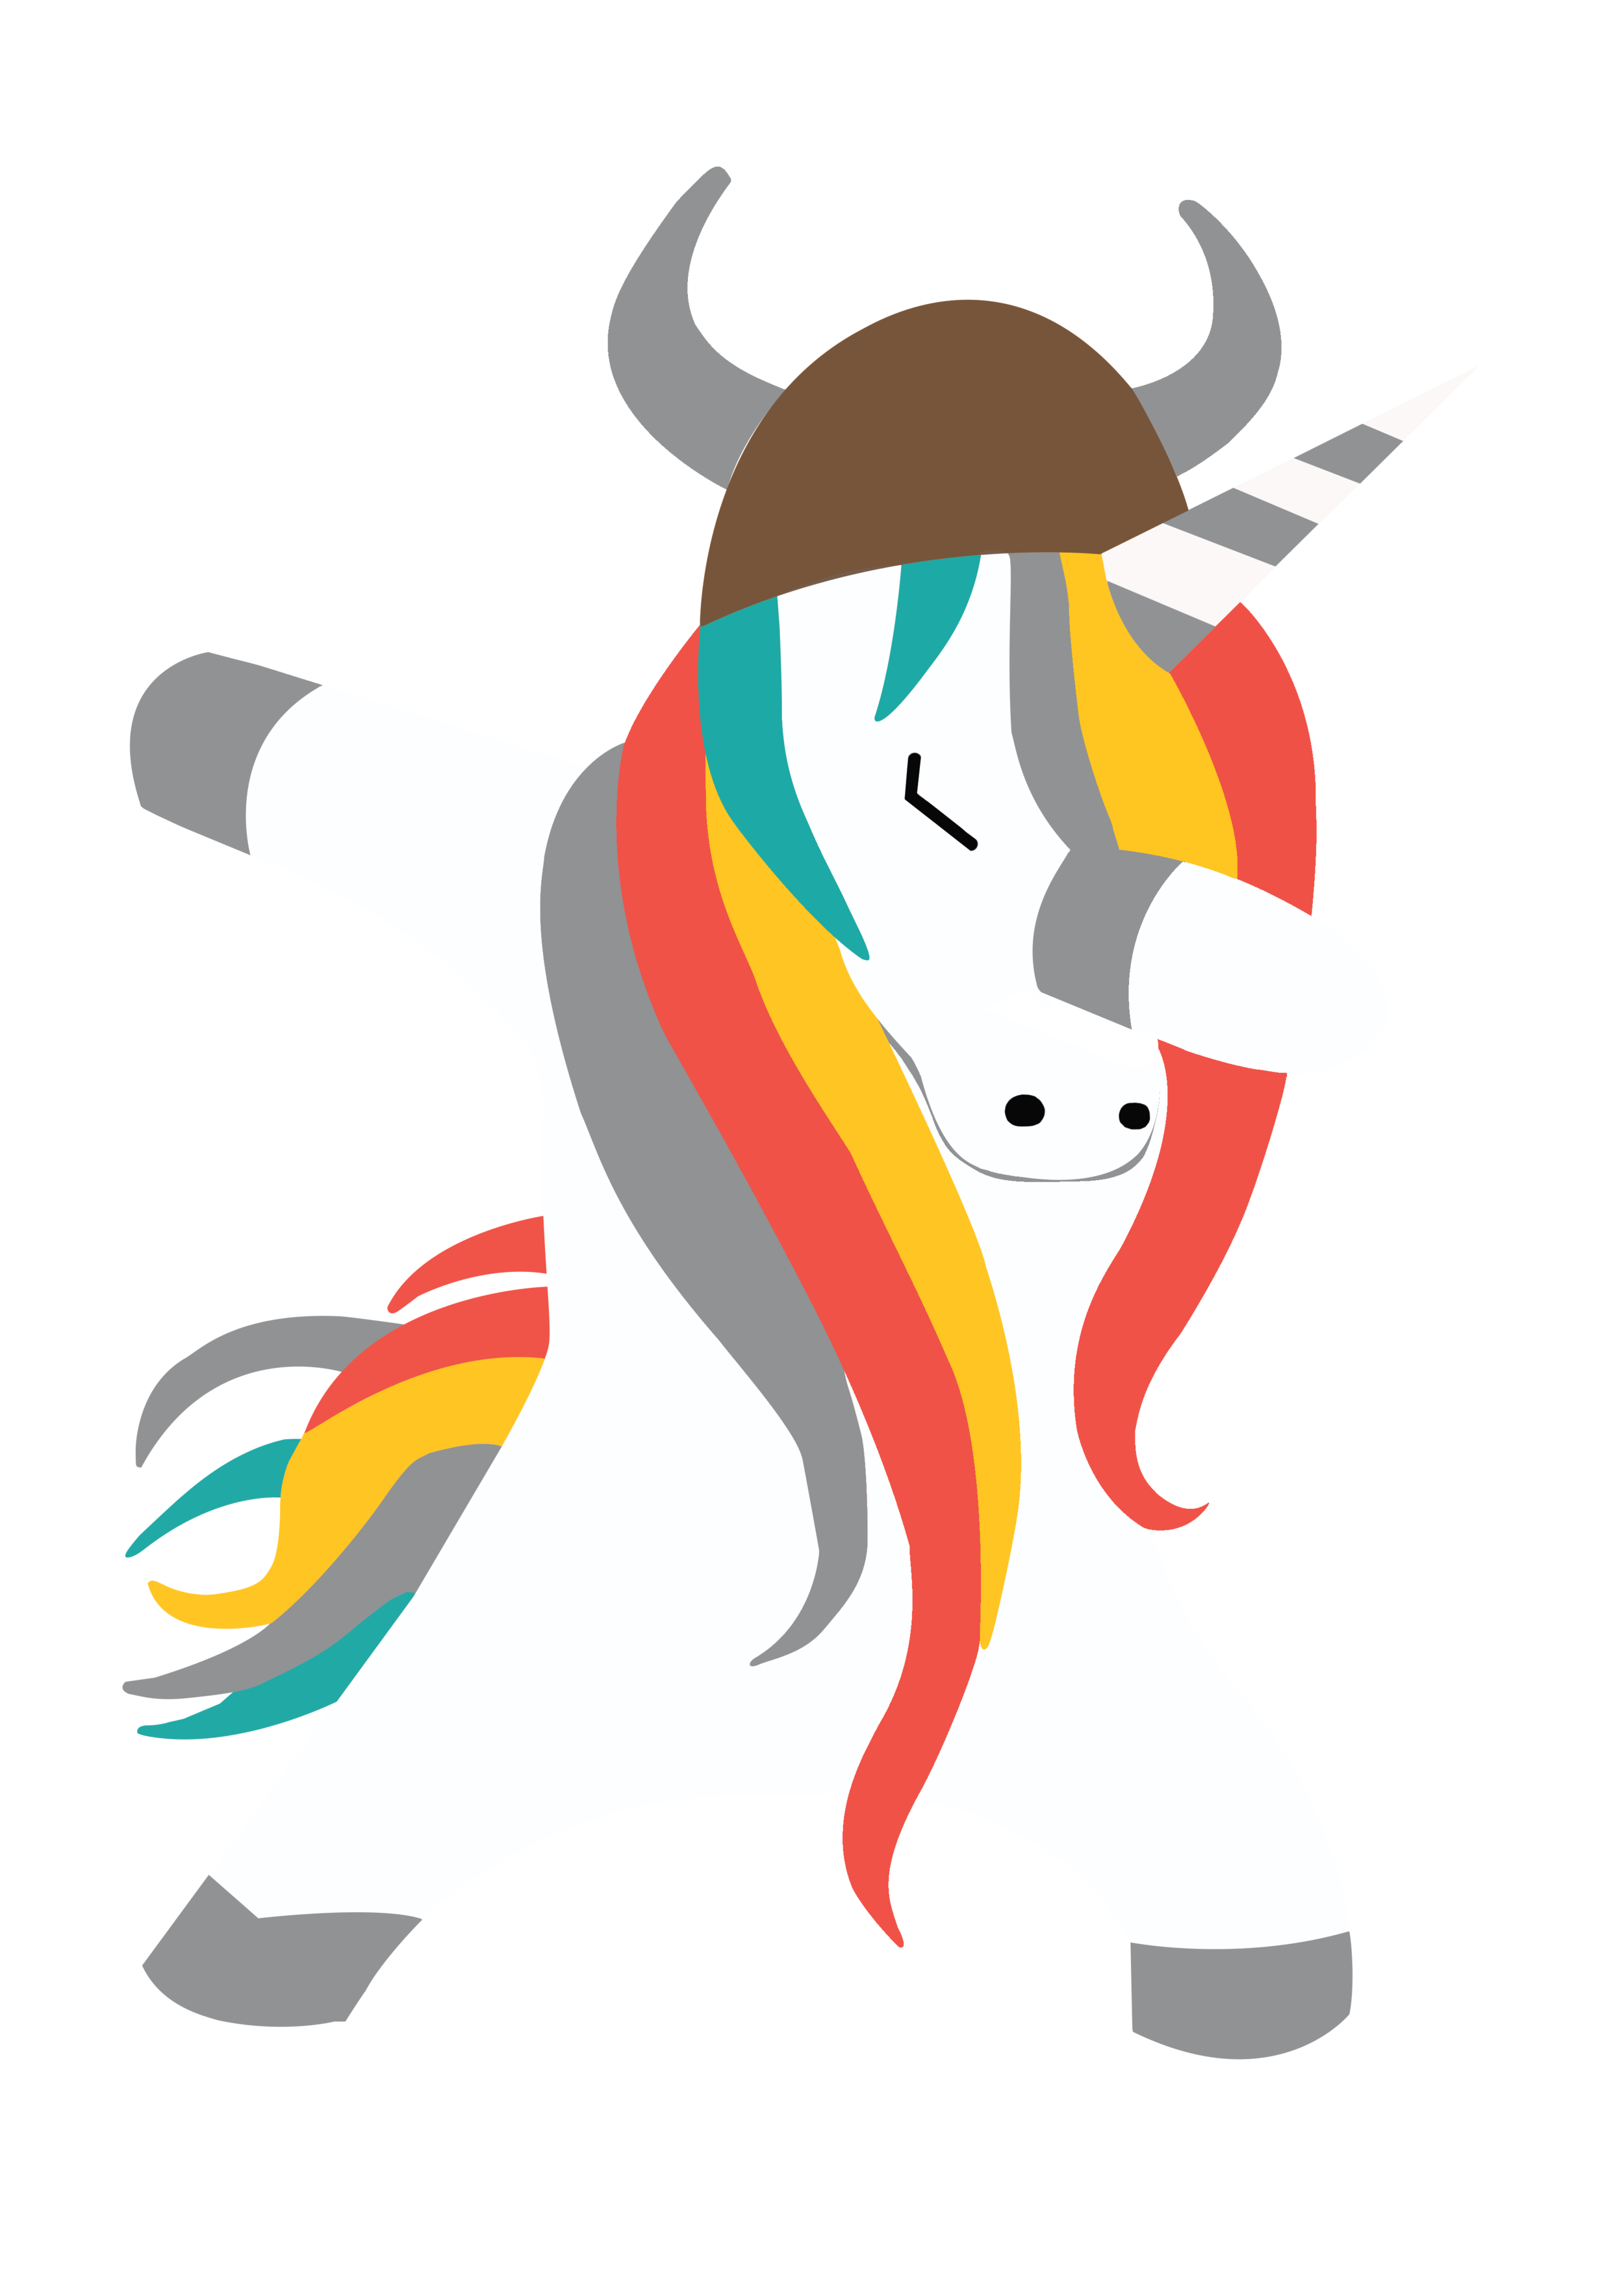 """A unicorn is a startup company valued at over $1 billion."""